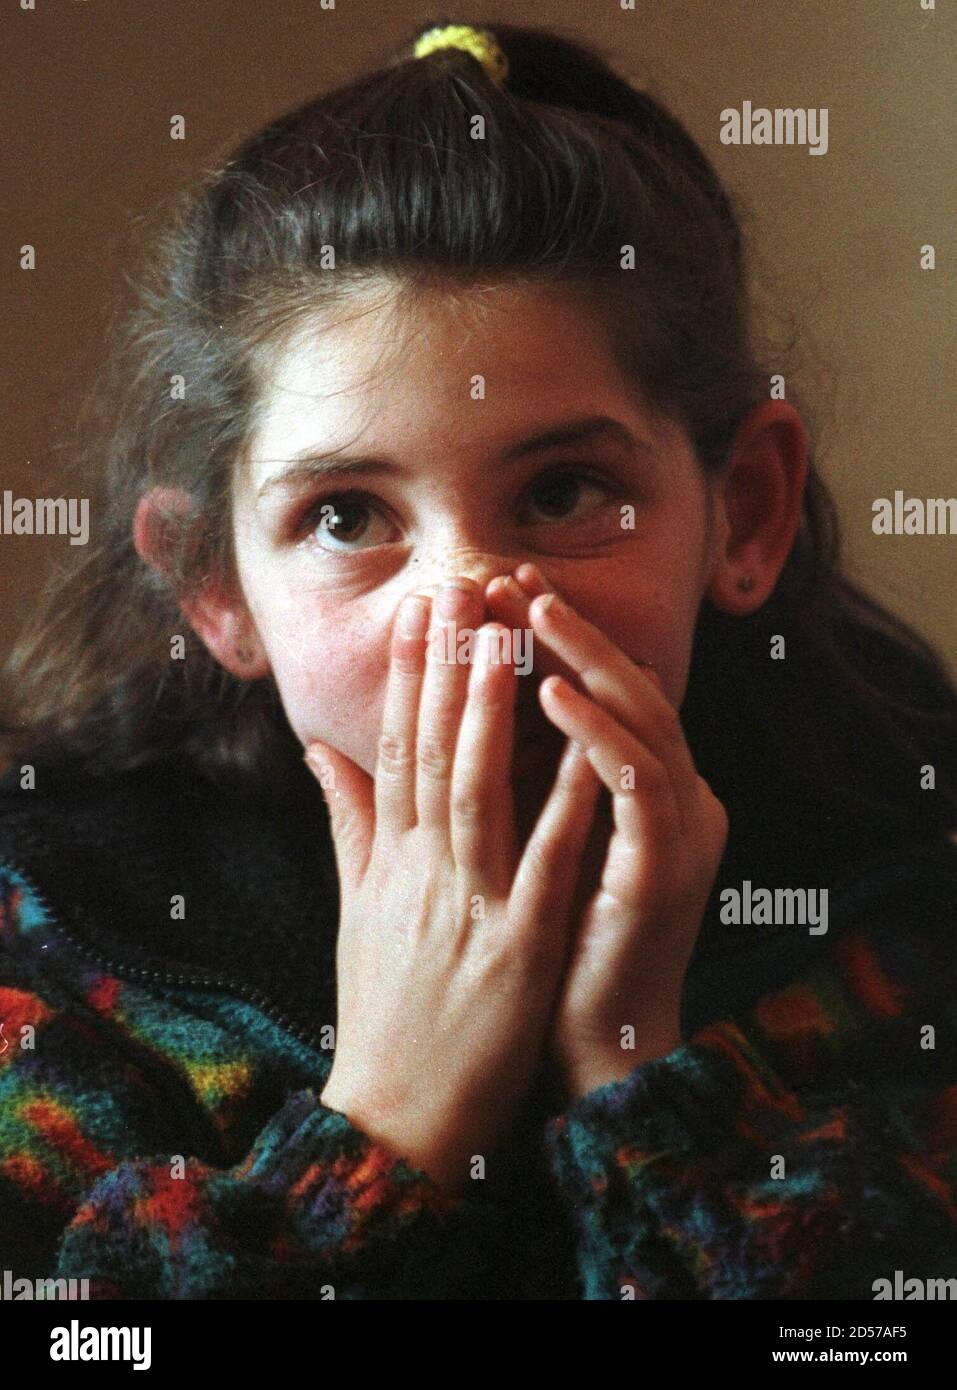 Besa Musliu, 9, an ethnic Albanian schoolgirl from the village of Racak holds her face as she stays indoors at the sound of mortar shelling January 19. Two ethnic Albanian families took shelter in a house in Petrovo after fleeing their village of Racak during shelling from Serb forces January 19. In Racak 45 civilians were found dead and villagers believe they were killed by Serbs last Friday January 16. Serbian police forces and Yugoslav army have been deployed around Racak village, about 26 km (16 miles) south of the regional capital Pristina and had been involved in an exchange of fire with Stock Photo